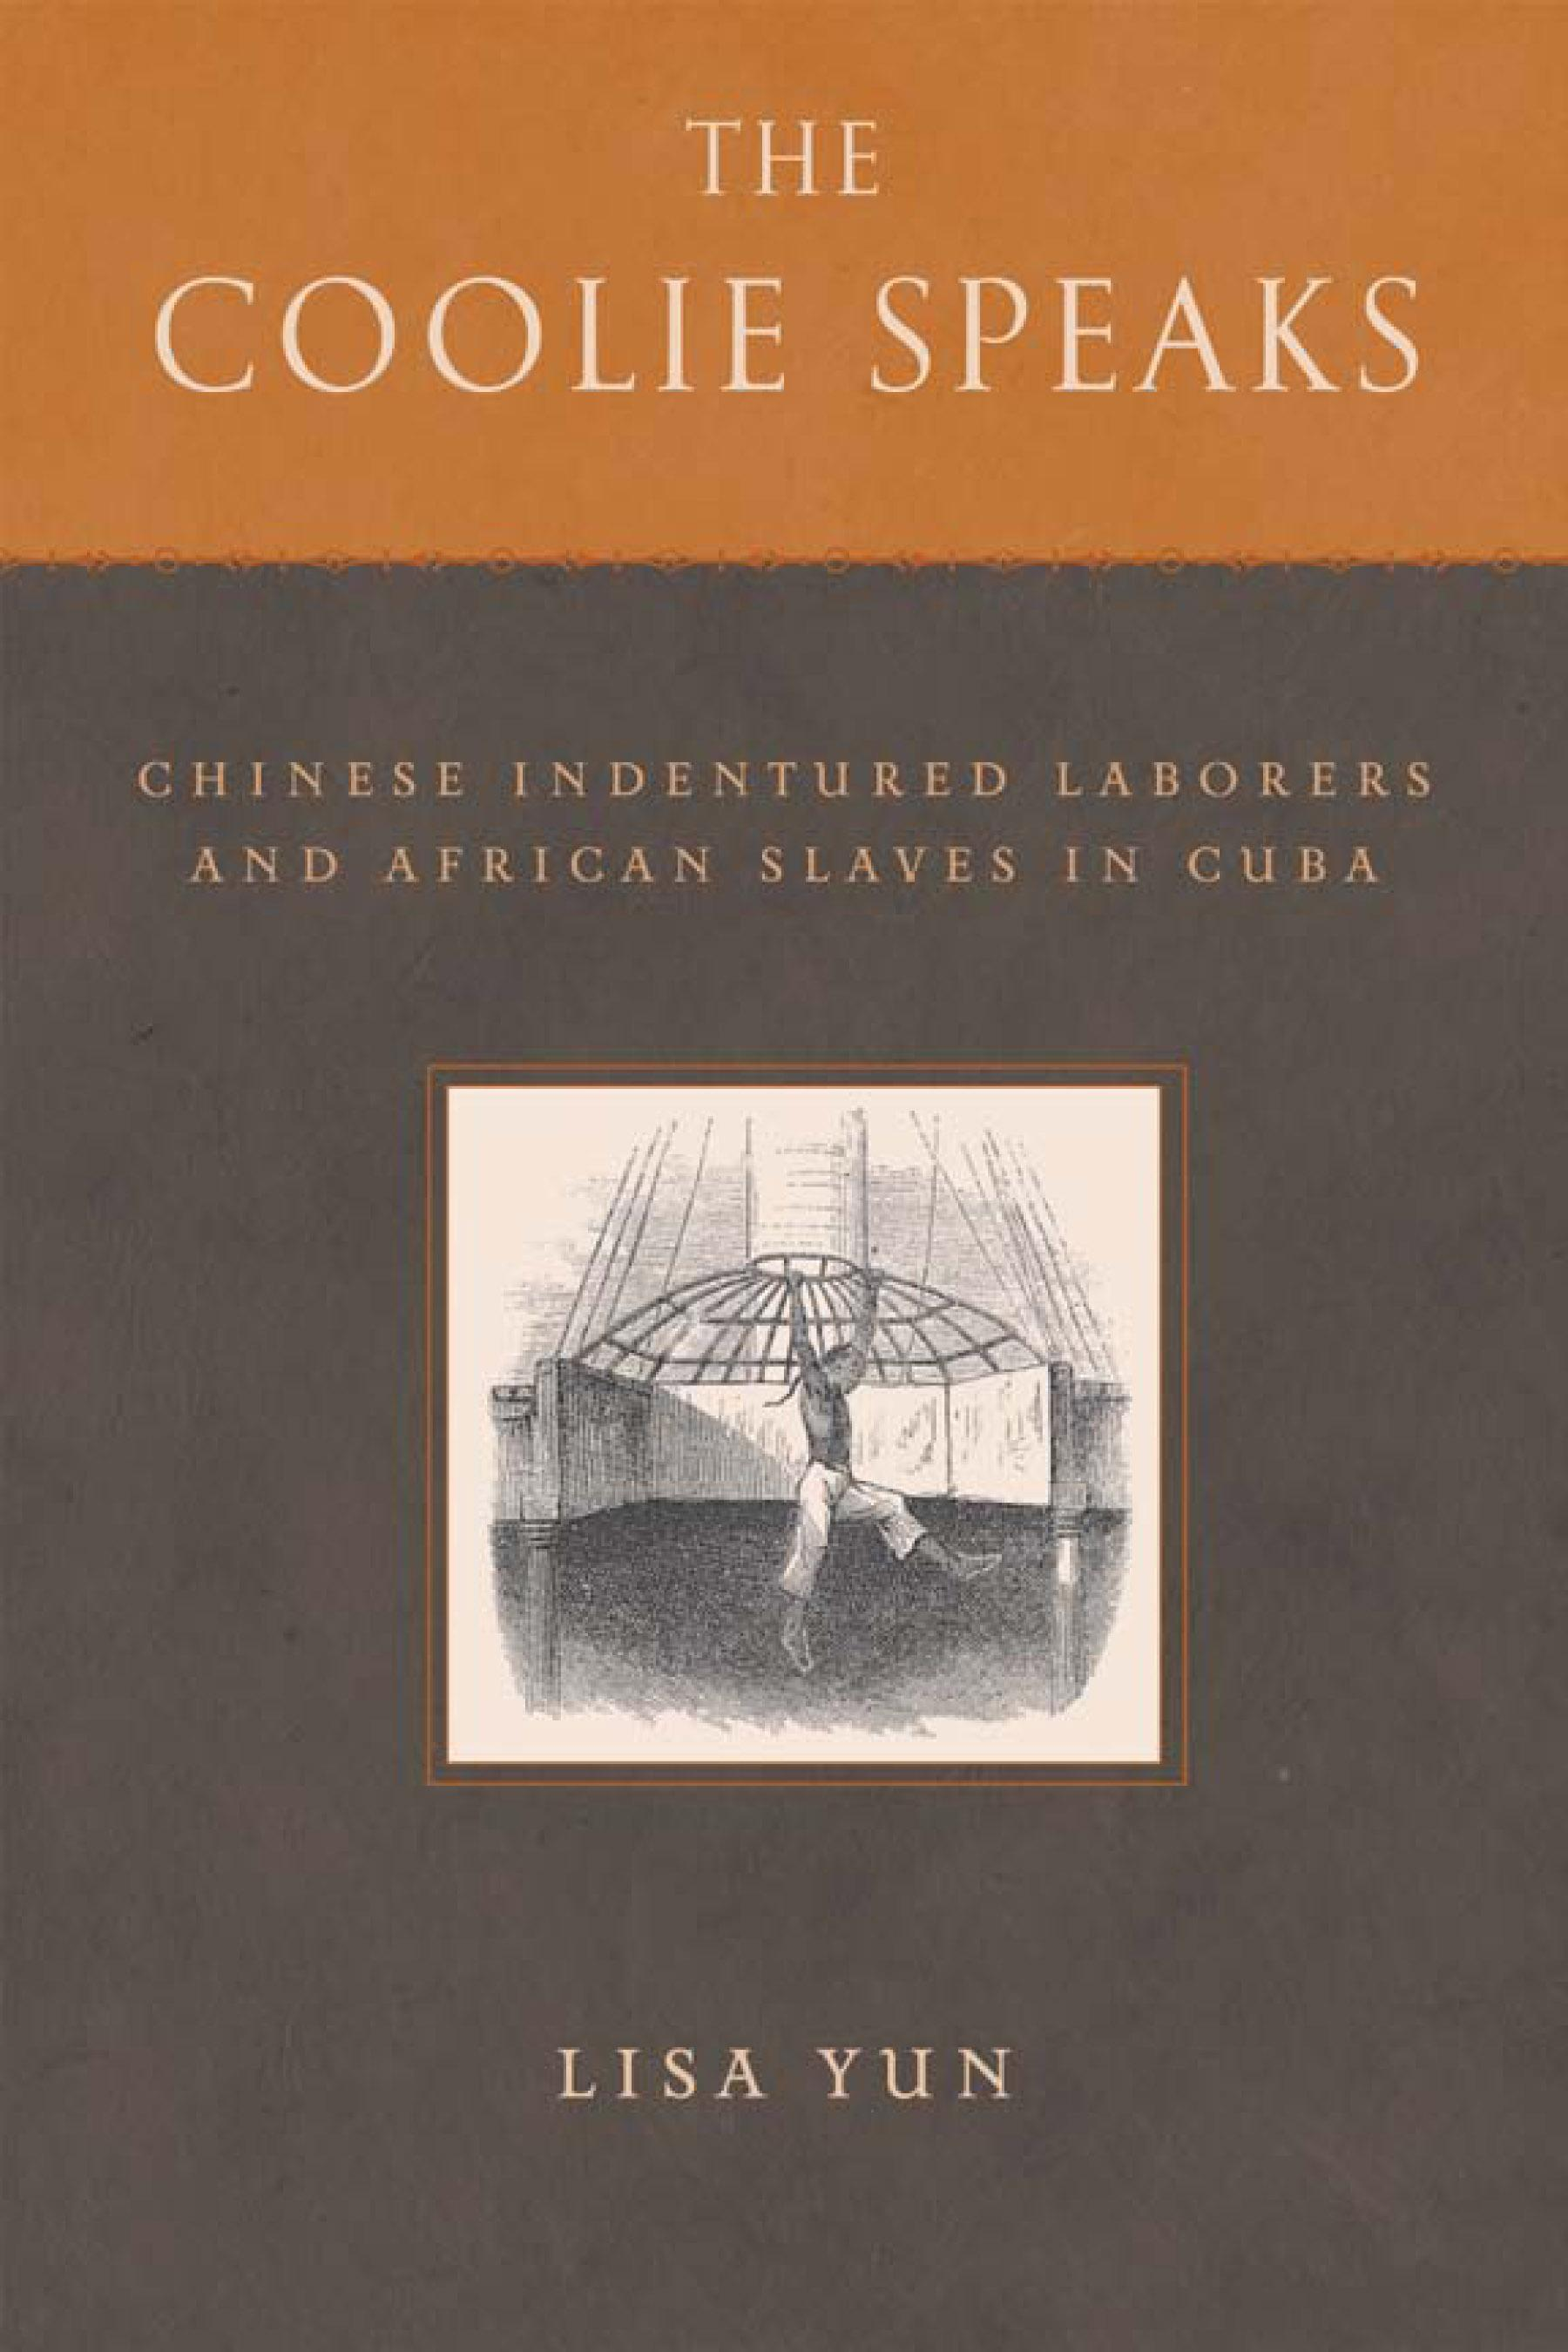 Coolie Speaks, The: Chinese Indentured Laborers and African Slaves in Cuba EB9781592135837